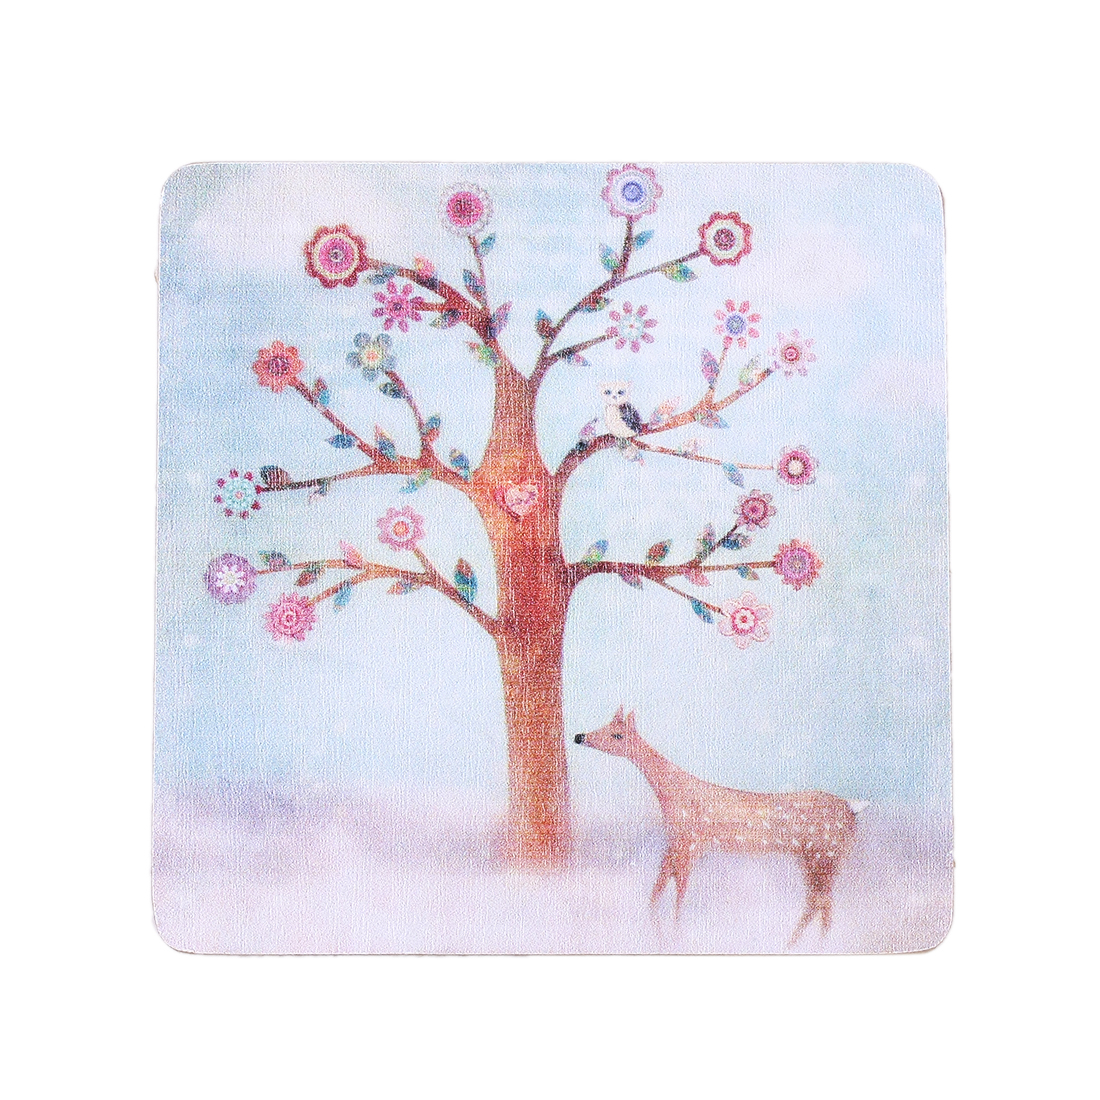 Tree Animal Pattern Heat Resistant Wood Coaster Teacup Mat Water Glass Pad